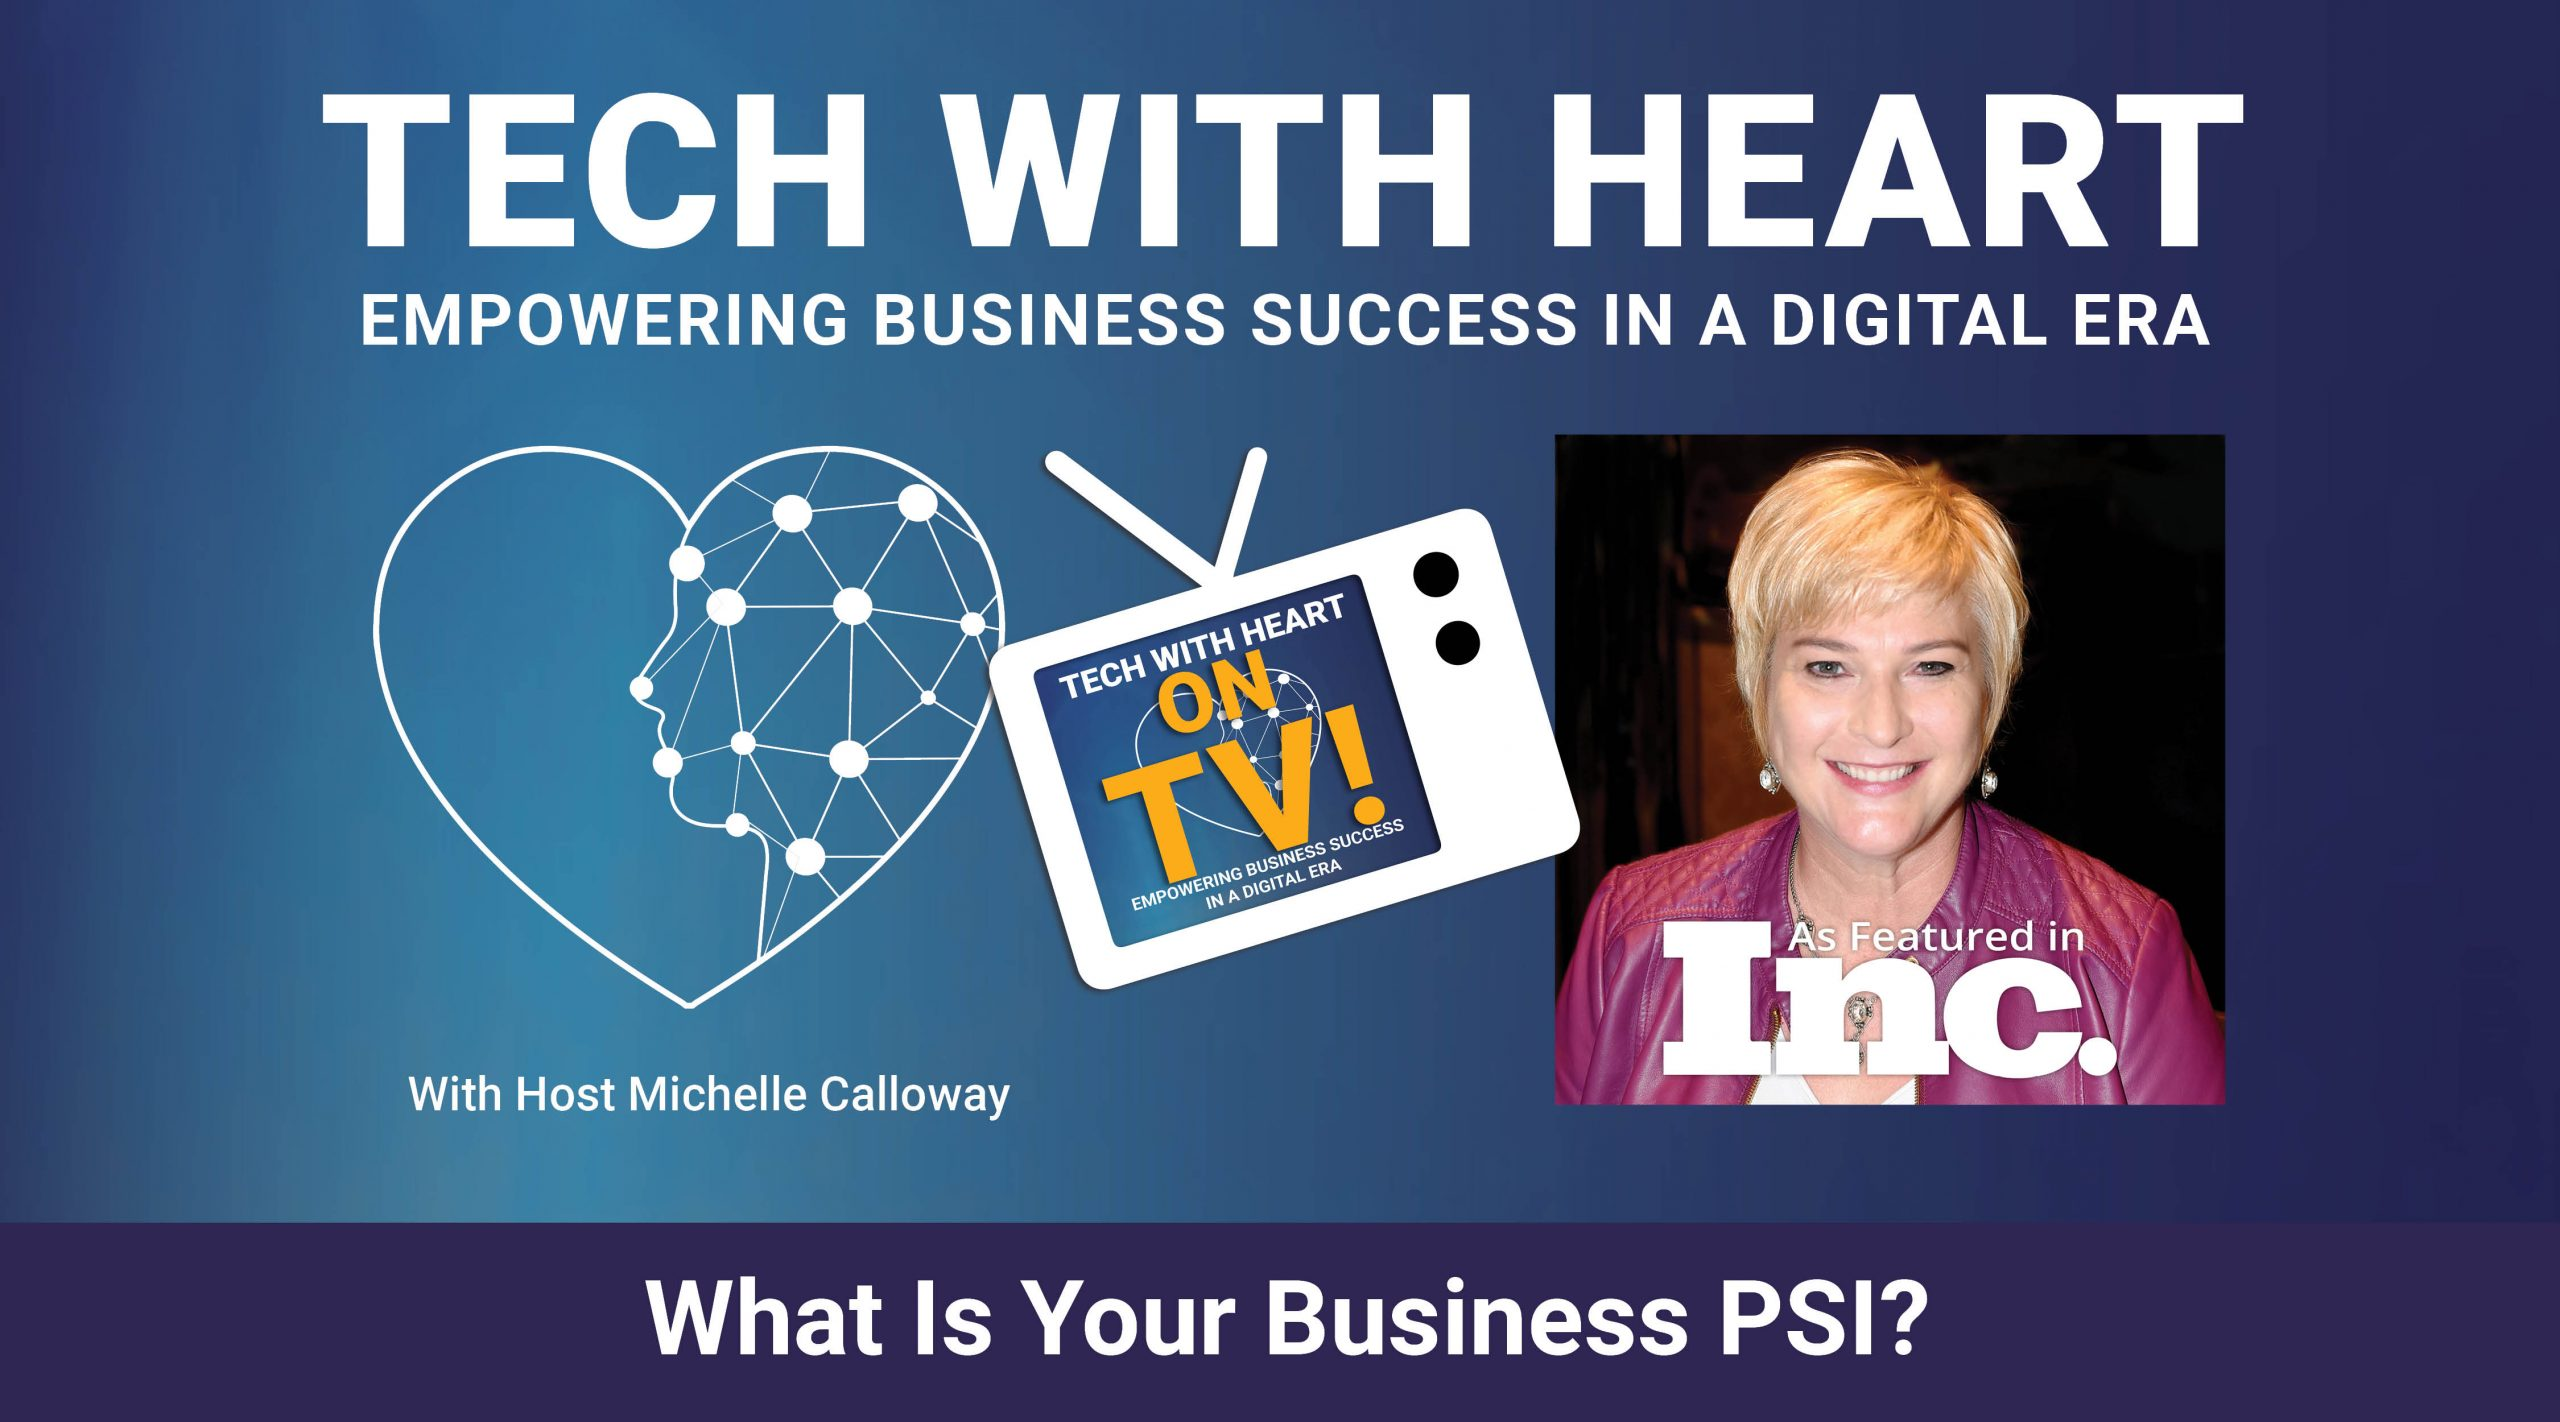 What is Your Business PSI?